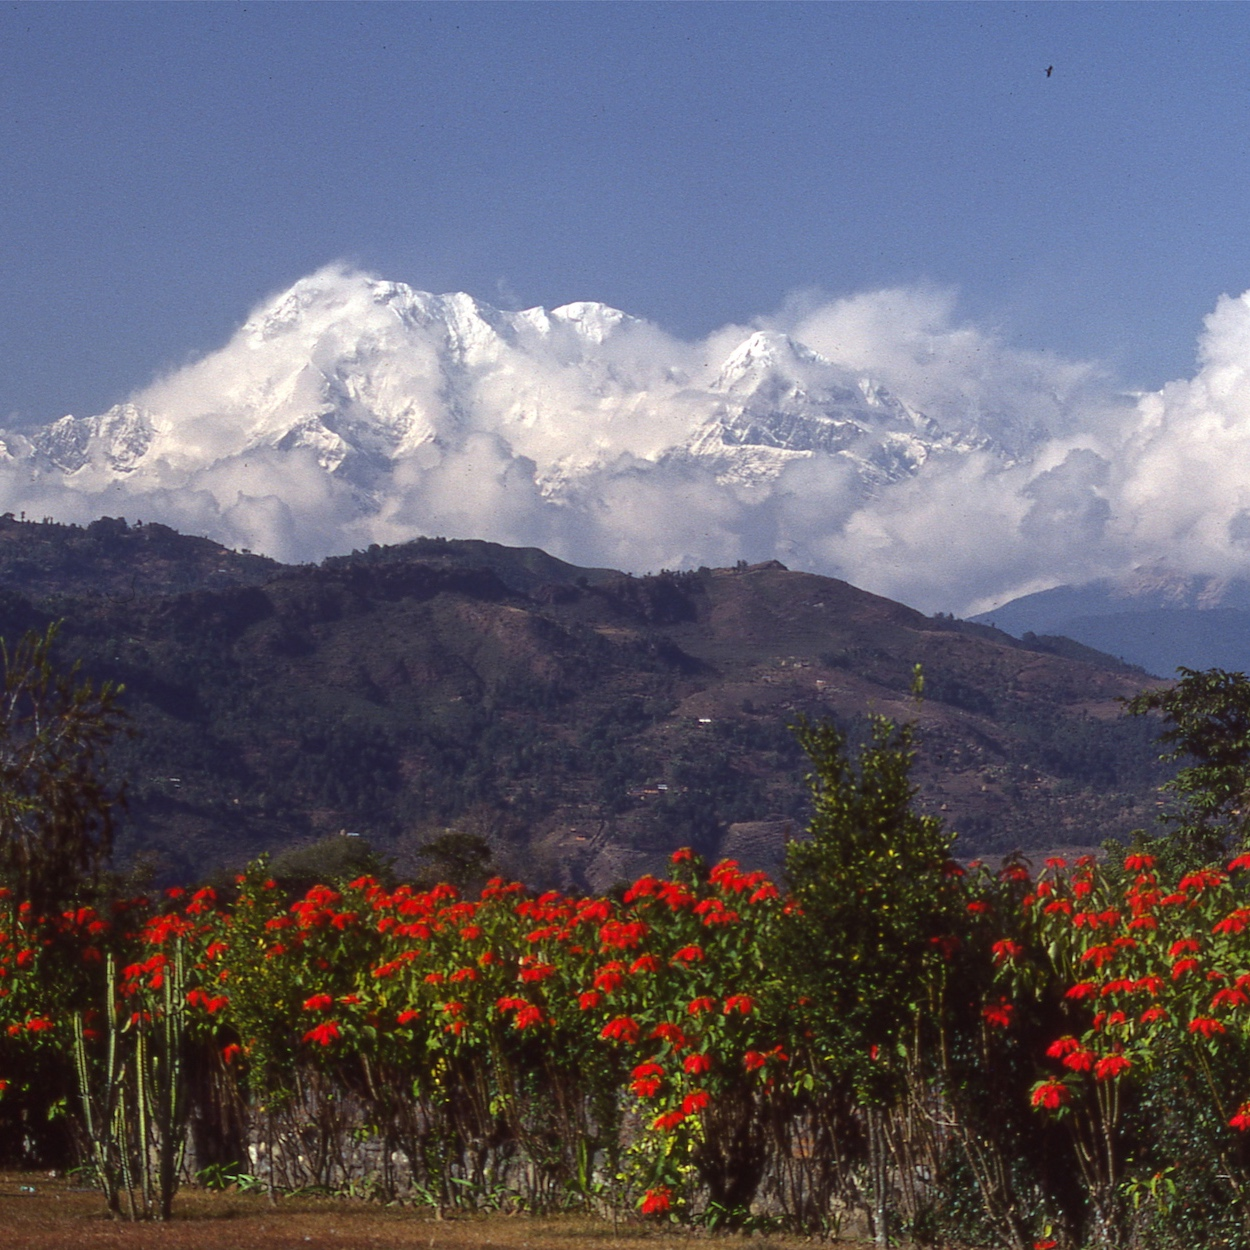 March 20 - Ascend through thick Rhododendron forests and look for Langur monkeys on route to DeuraliRemarkable views much of the day of Annapurna South, Hiunchuli and Macchapuchare